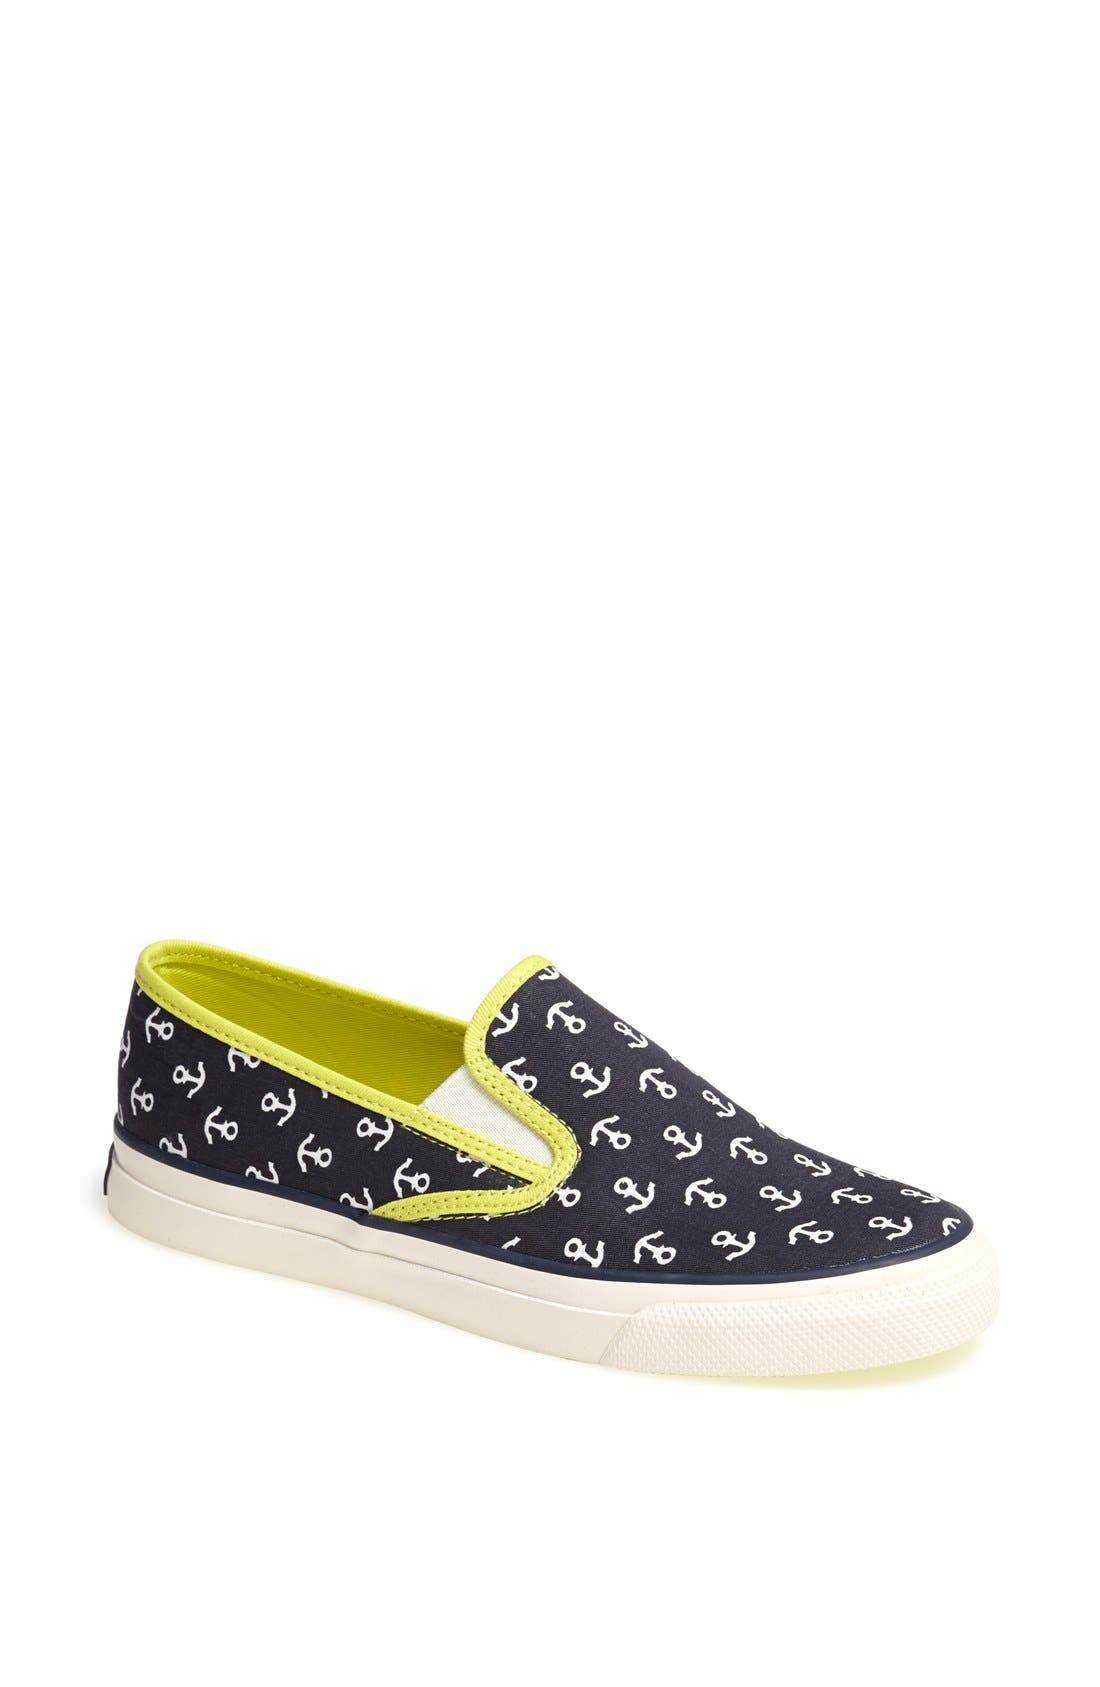 Alternate Image 1 Selected - Sperry Top-Sider® 'Mariner' Boat Shoe (Women) (Online Only)